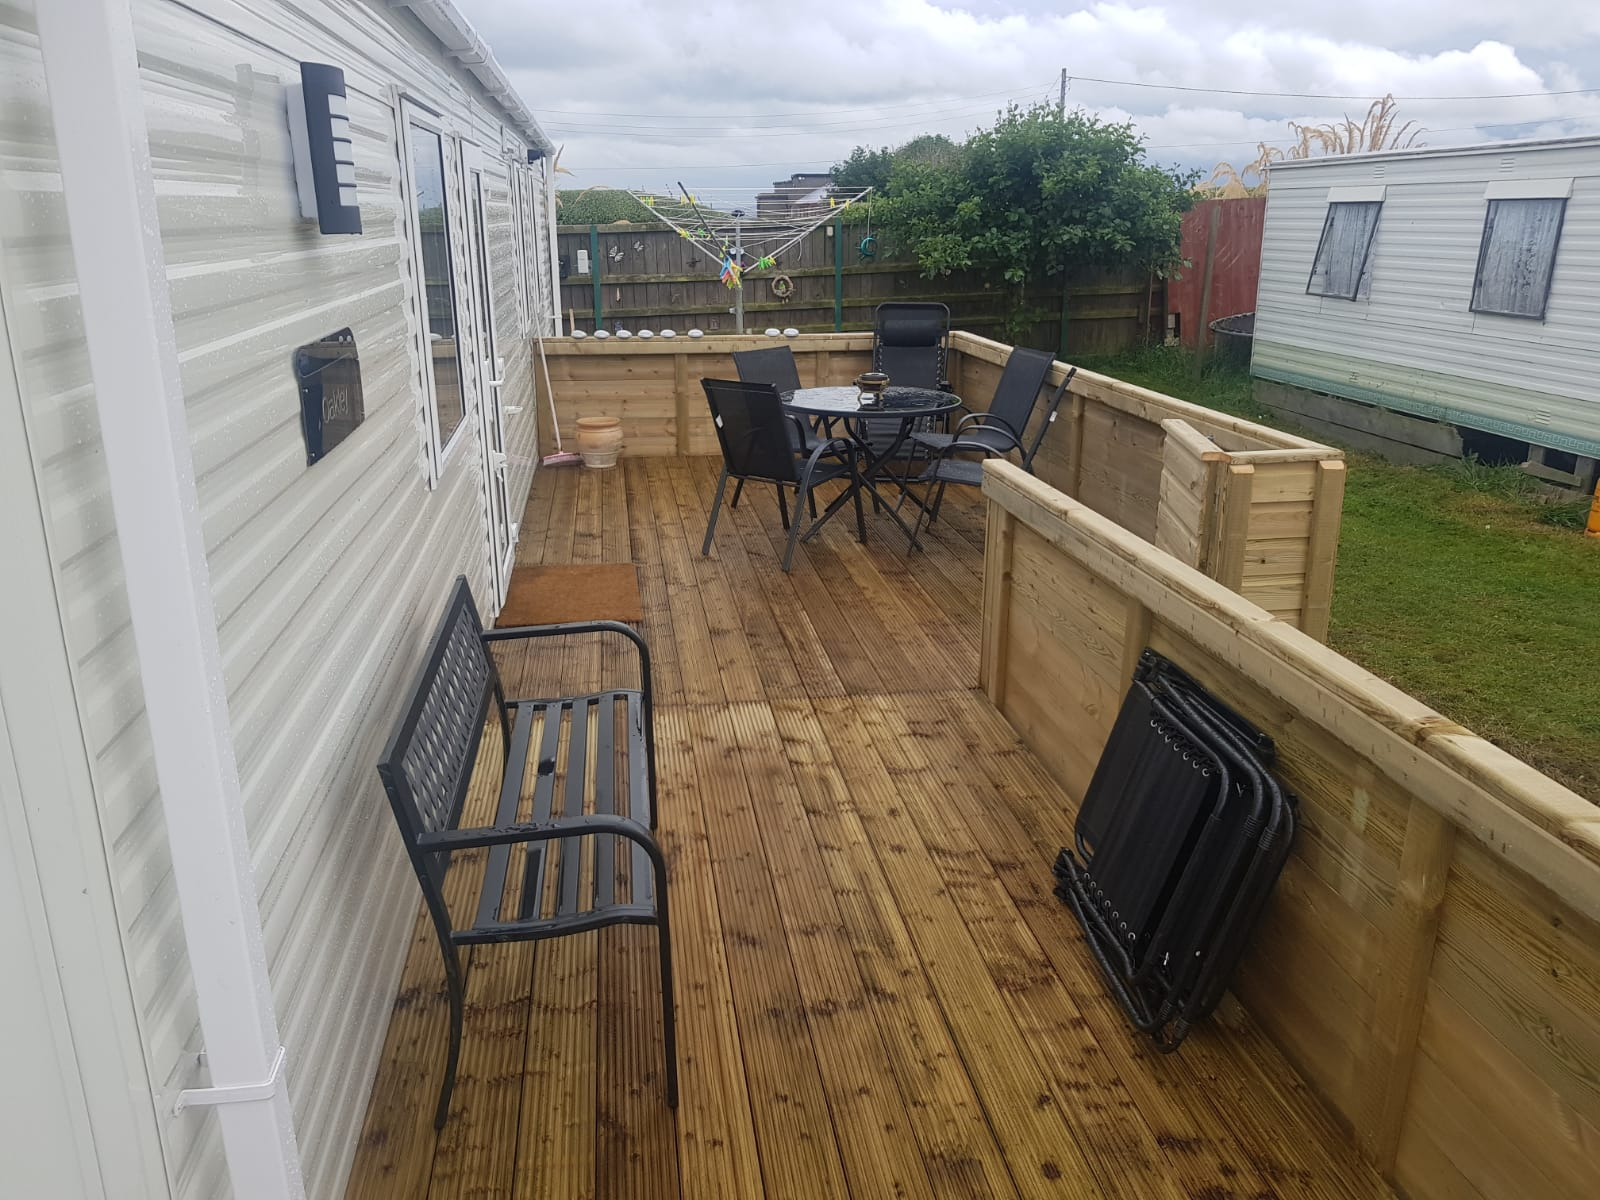 New Mobile Home & Decking Finished @ Lynders Mobile Home Park